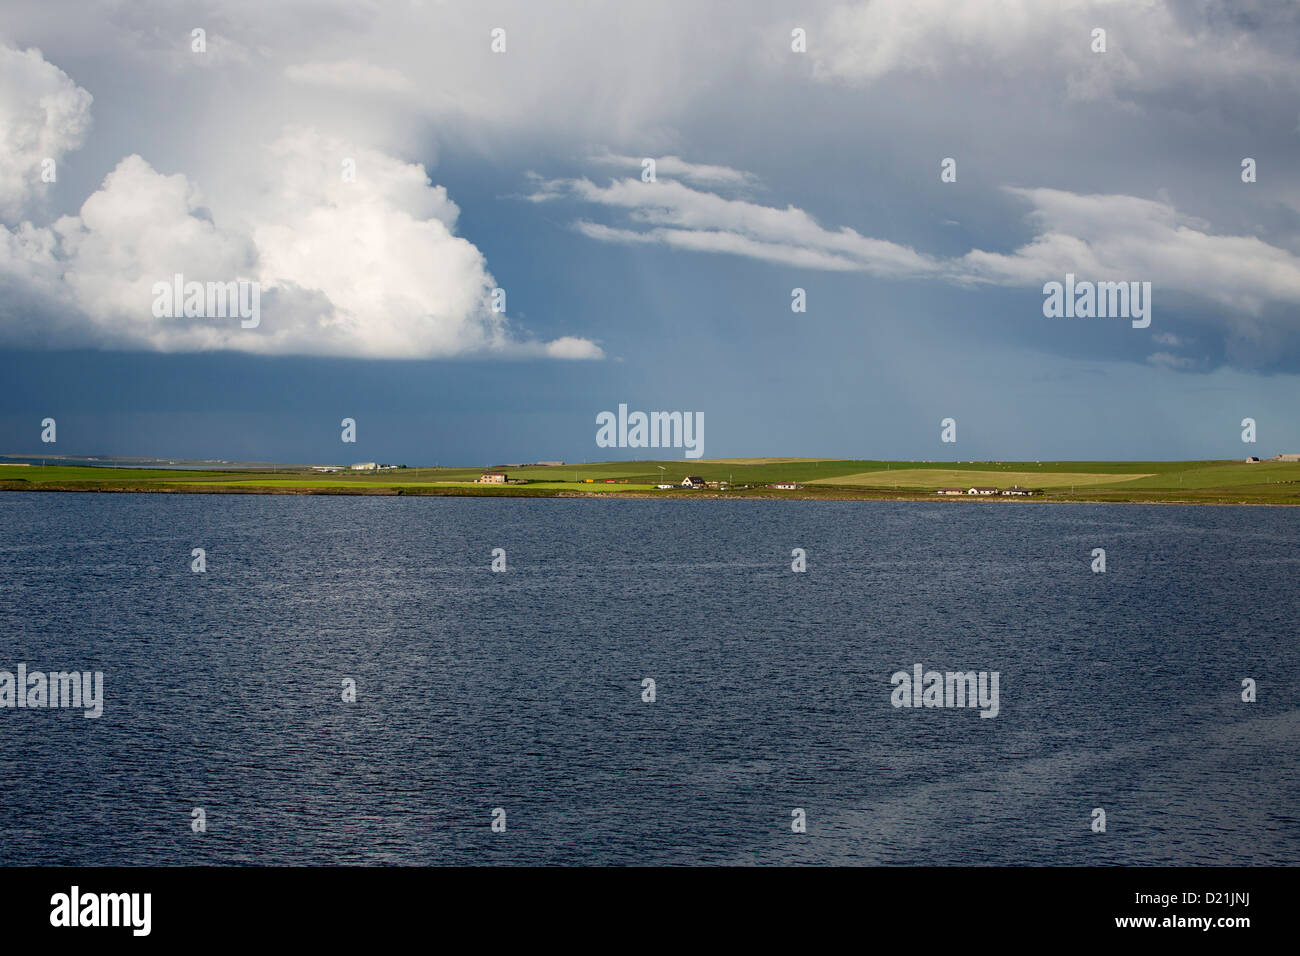 Coastline and storm clouds, Kirkwall, Orkney Islands, Scotland, United Kingdom - Stock Image